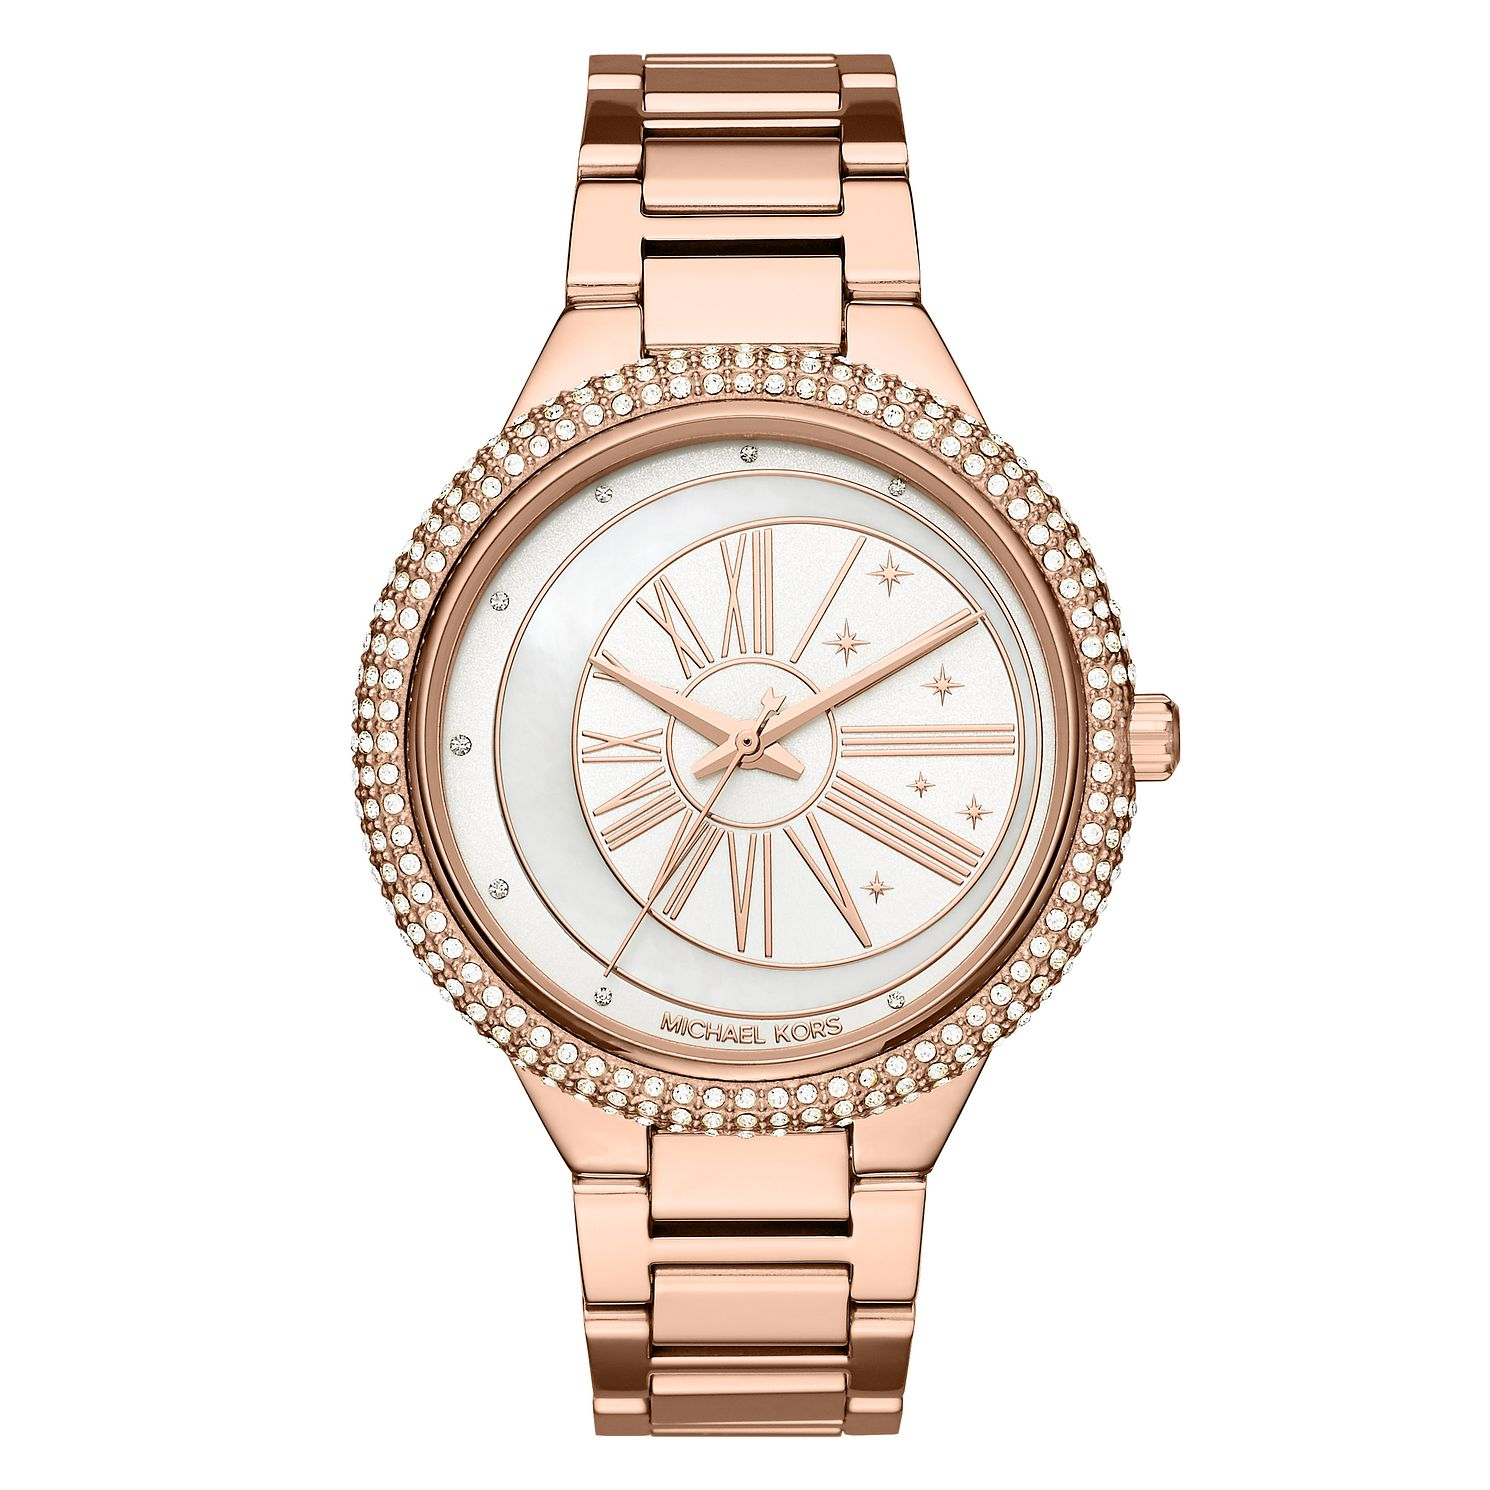 Michael Kors Jaryn Ladies' Rose Gold Tone Stone Set Watch - Product number 8600570